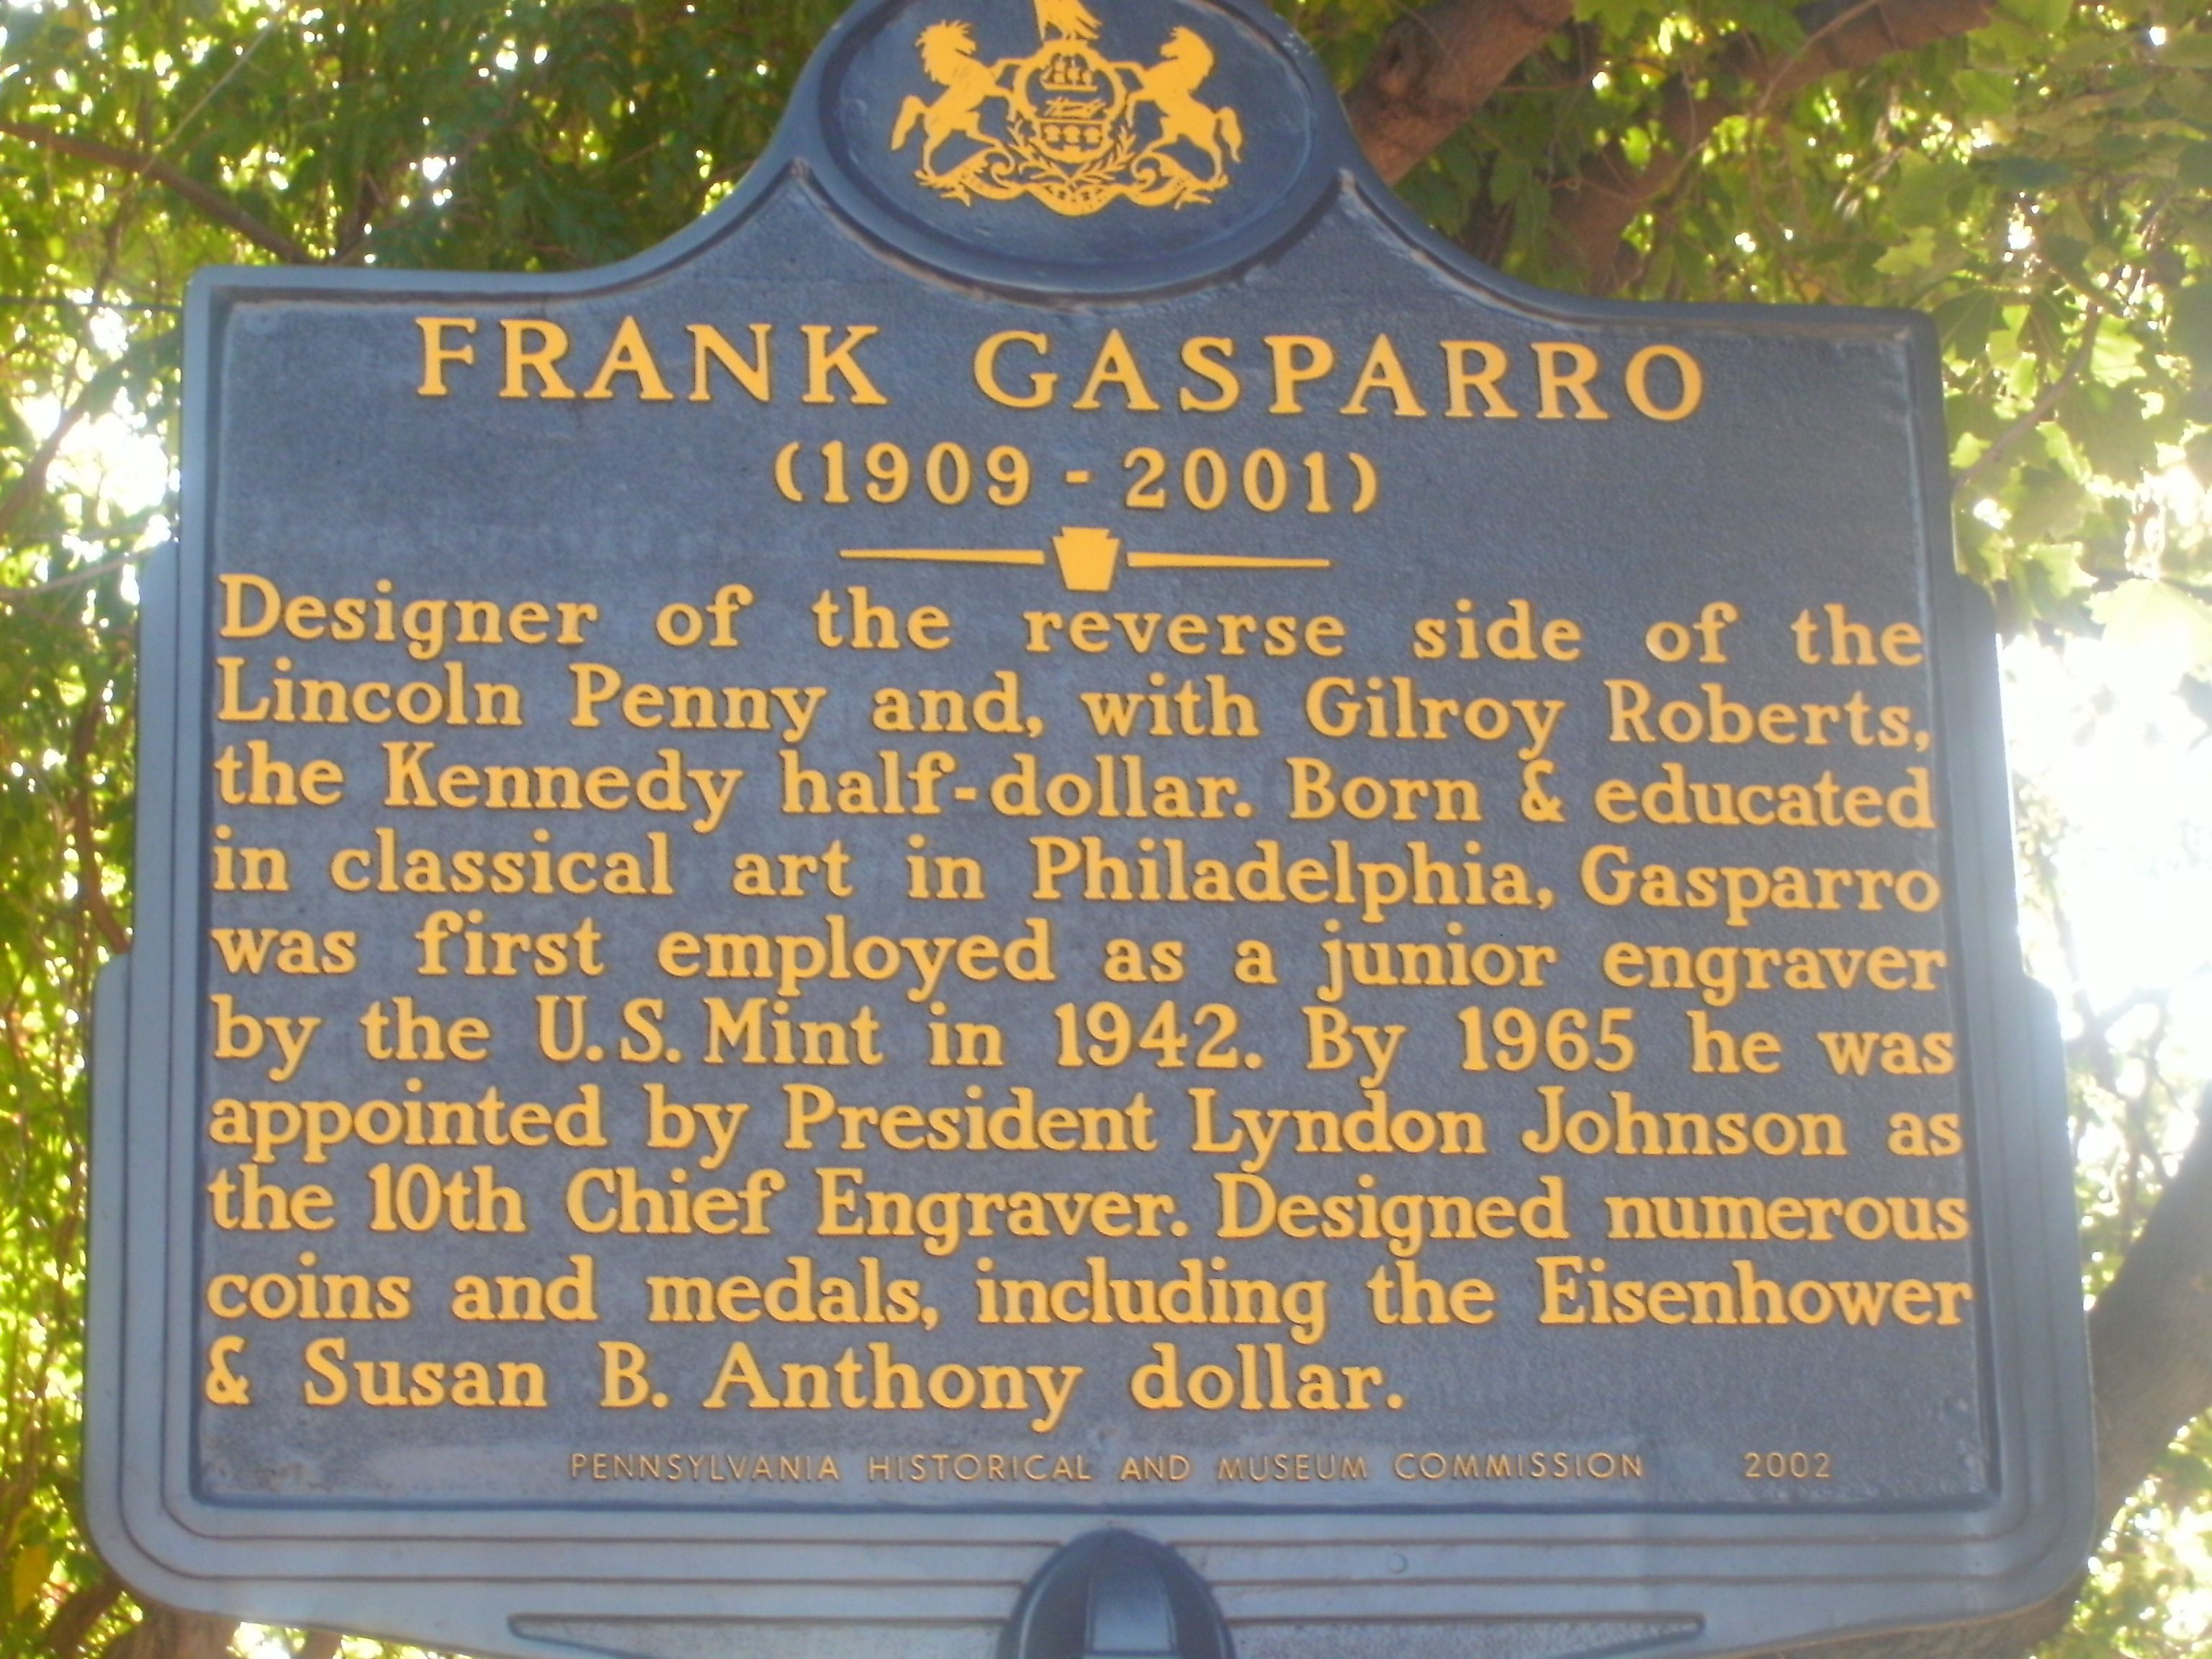 Frank Gasparro This Marker Is Located At 727 Carpenter Street In